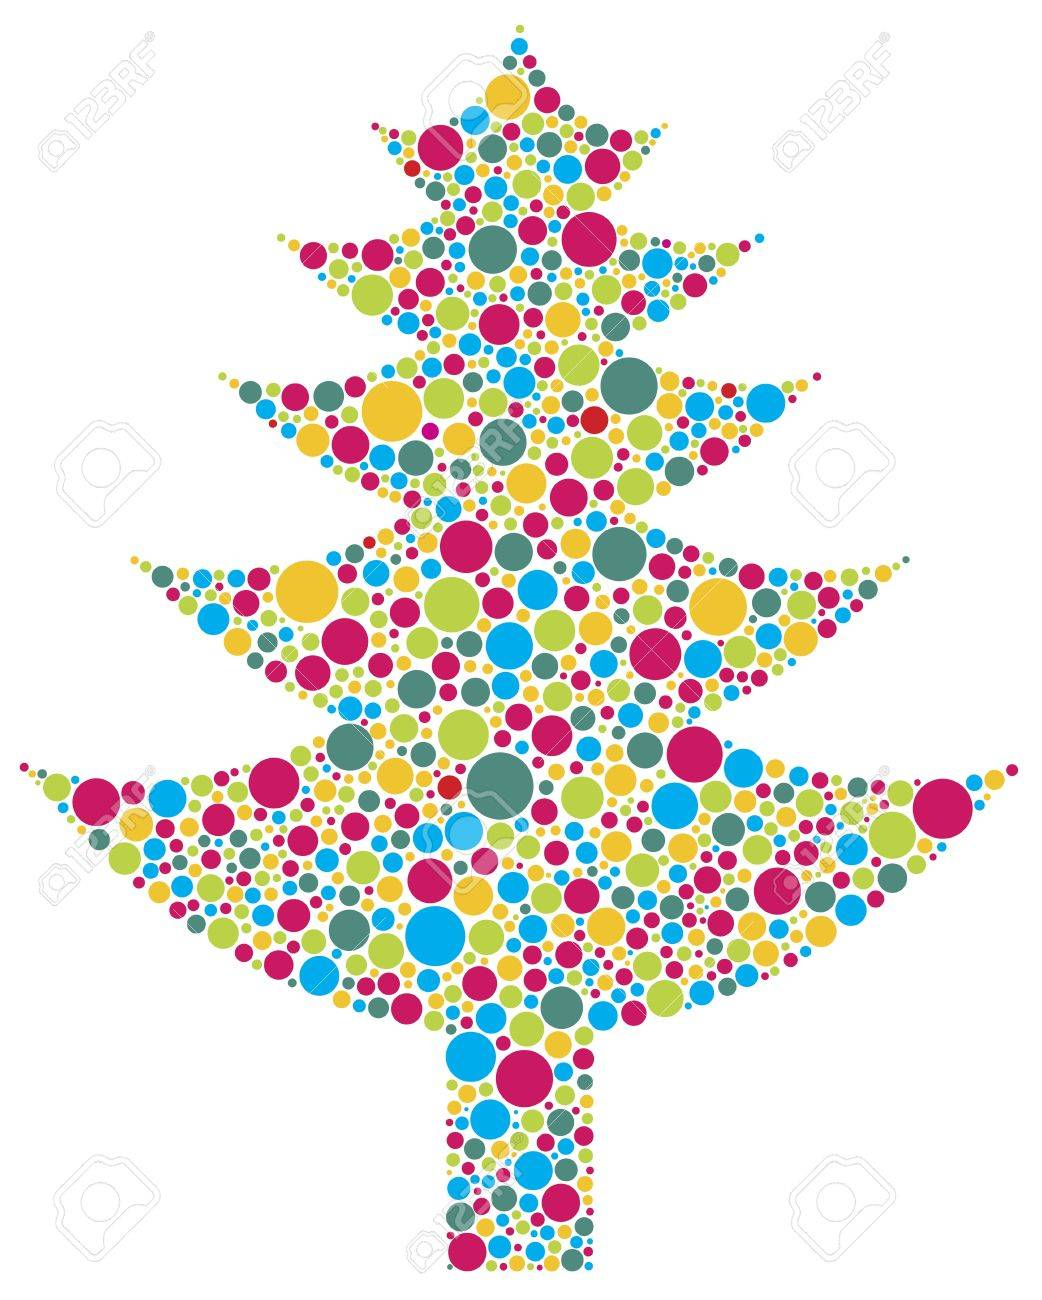 Christmas Tree Silhouette with Bright Colorful Polka Dots Pattern Illustration Isolated on White Background Stock Vector - 16604607